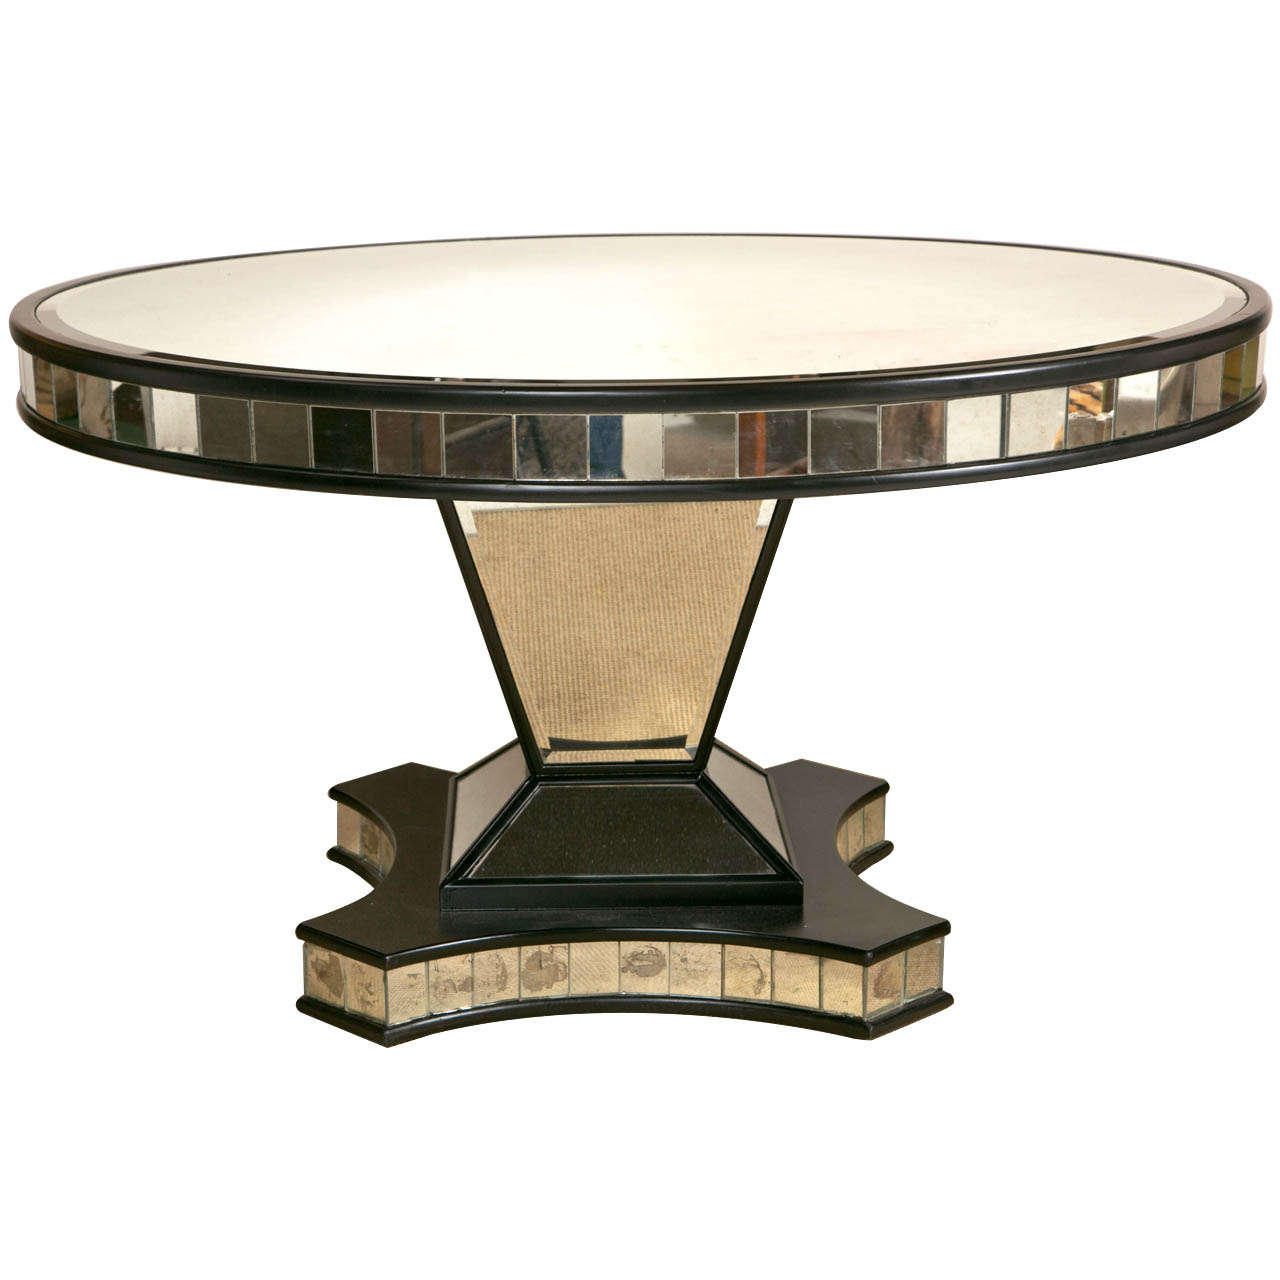 Mid Century Mirrored Pedestal Base Dining Table at 1stdibs : X from www.1stdibs.com size 1280 x 1280 jpeg 81kB